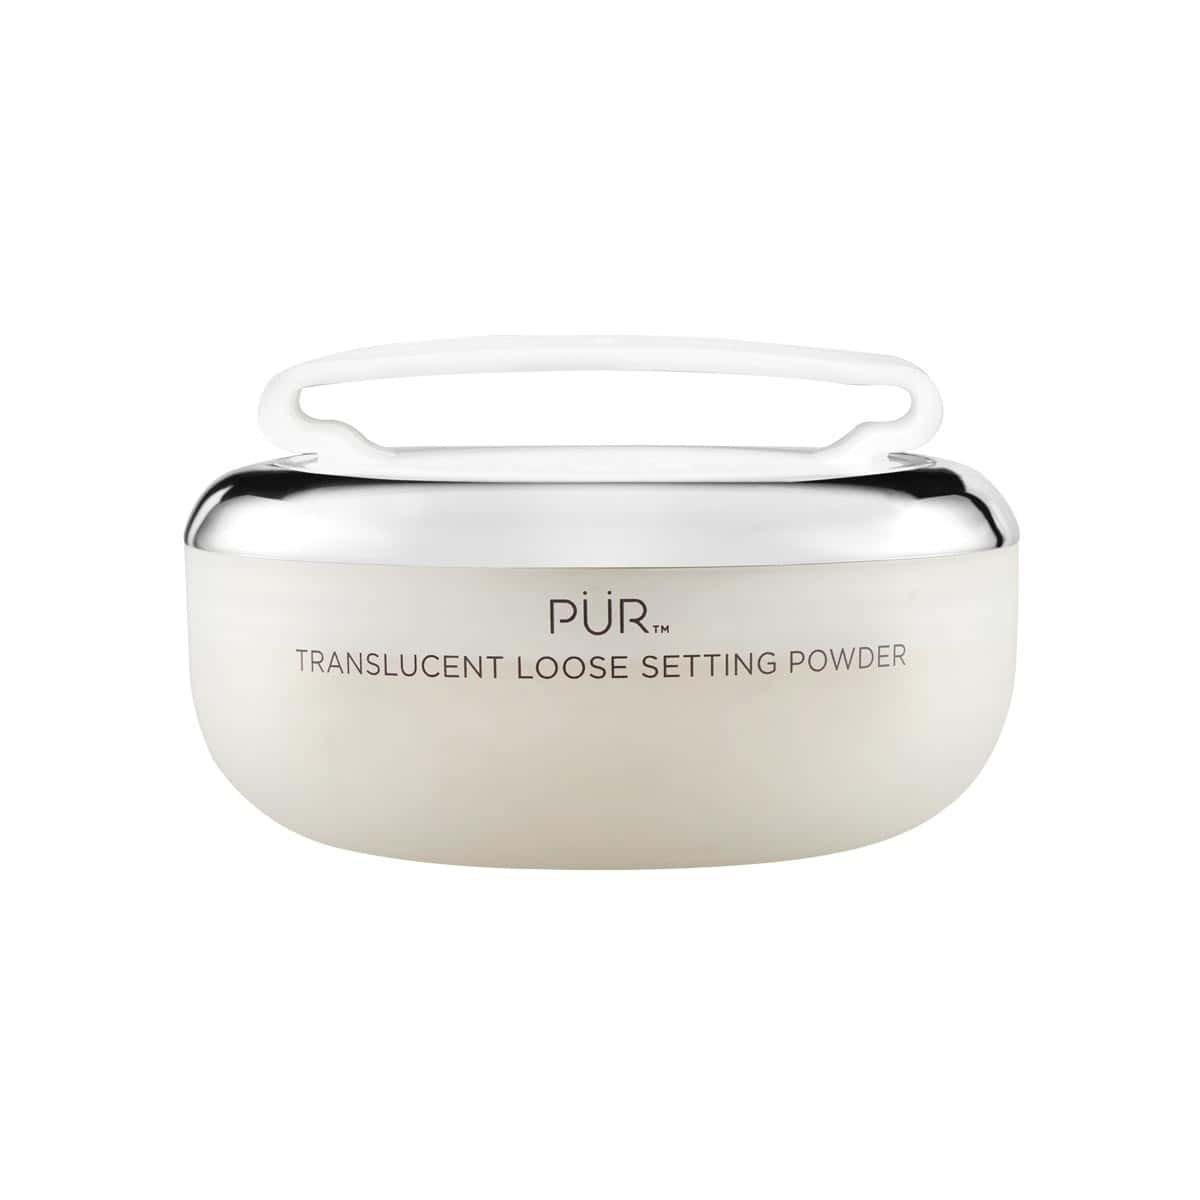 PÜR™ Translucent Loose Setting Powder